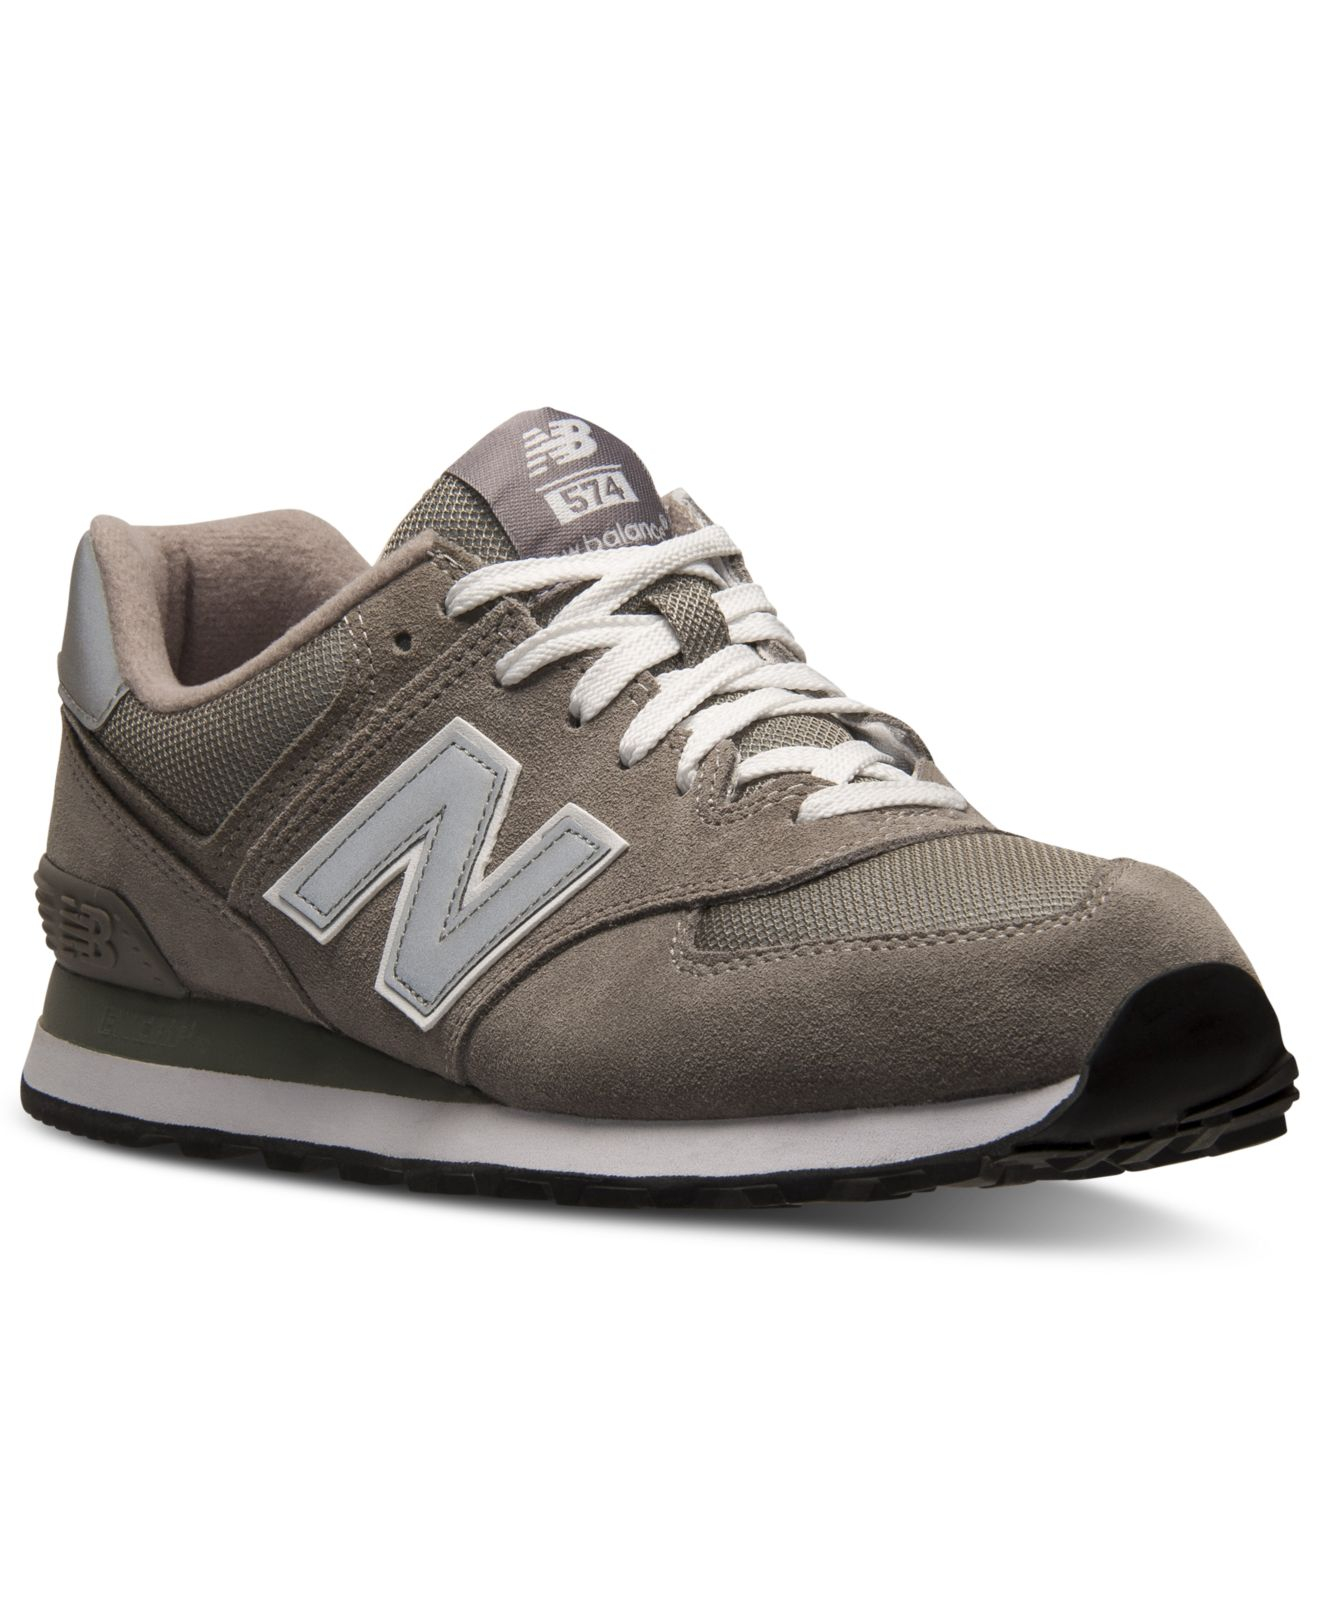 new balance 574 grey suede wedge